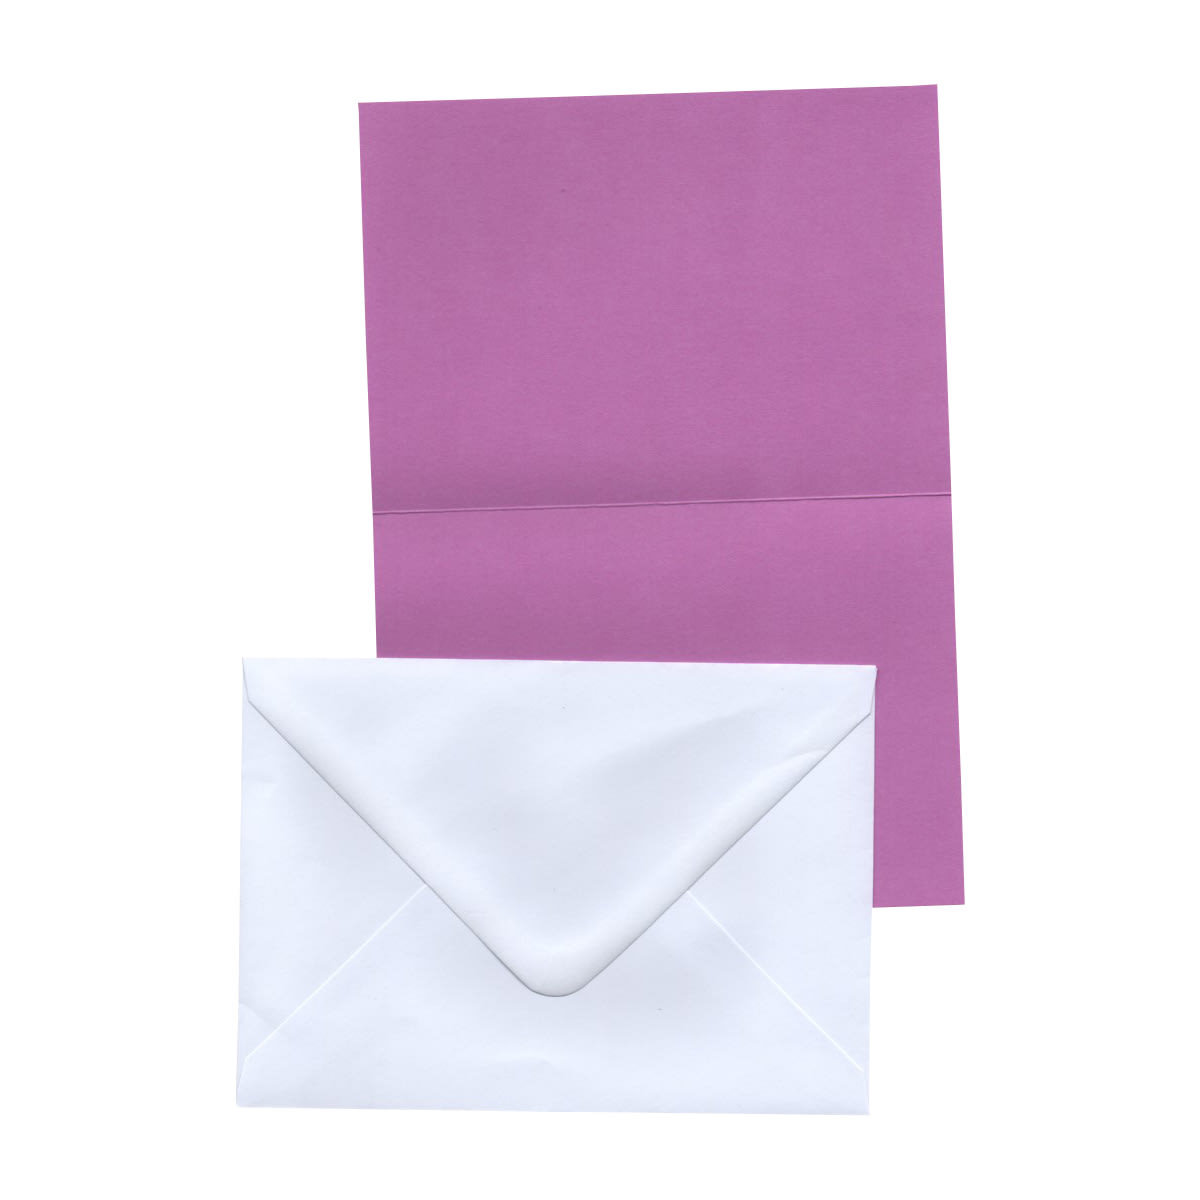 A6 LILAC CARD BLANKS & WHITE ENVELOPES (PACK OF 20)